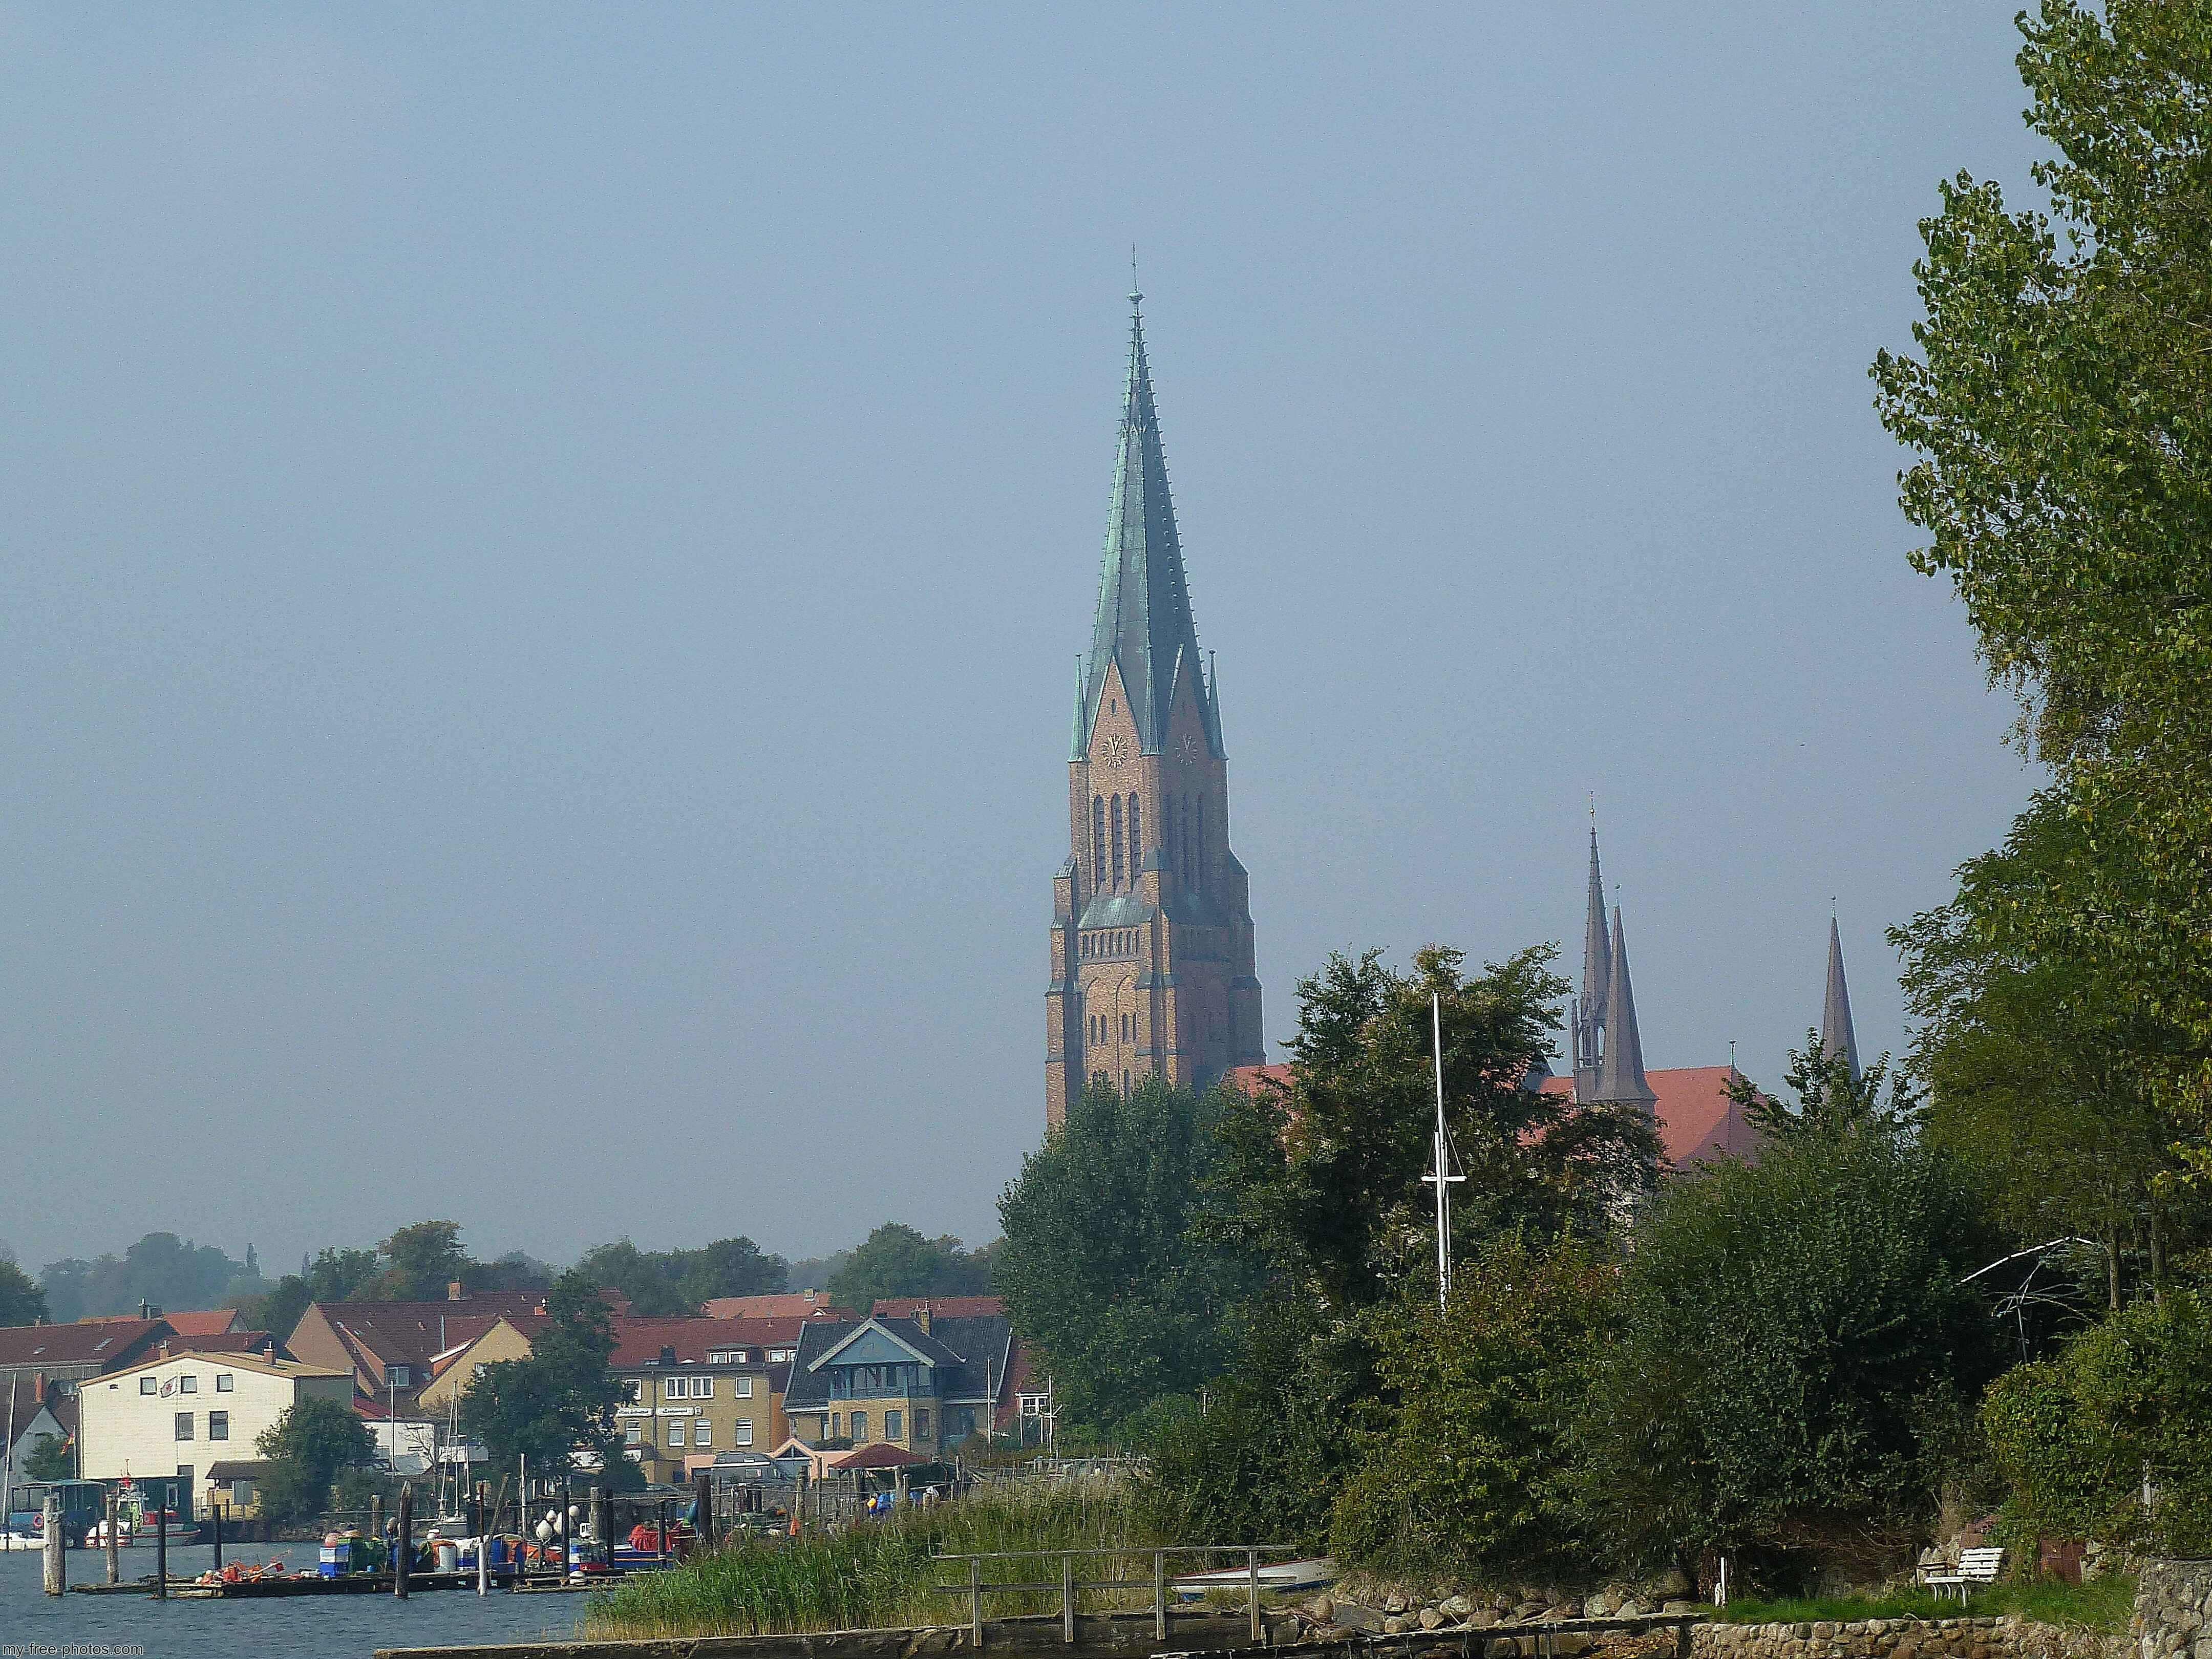 Schleswig. St. Peter's Cathedral